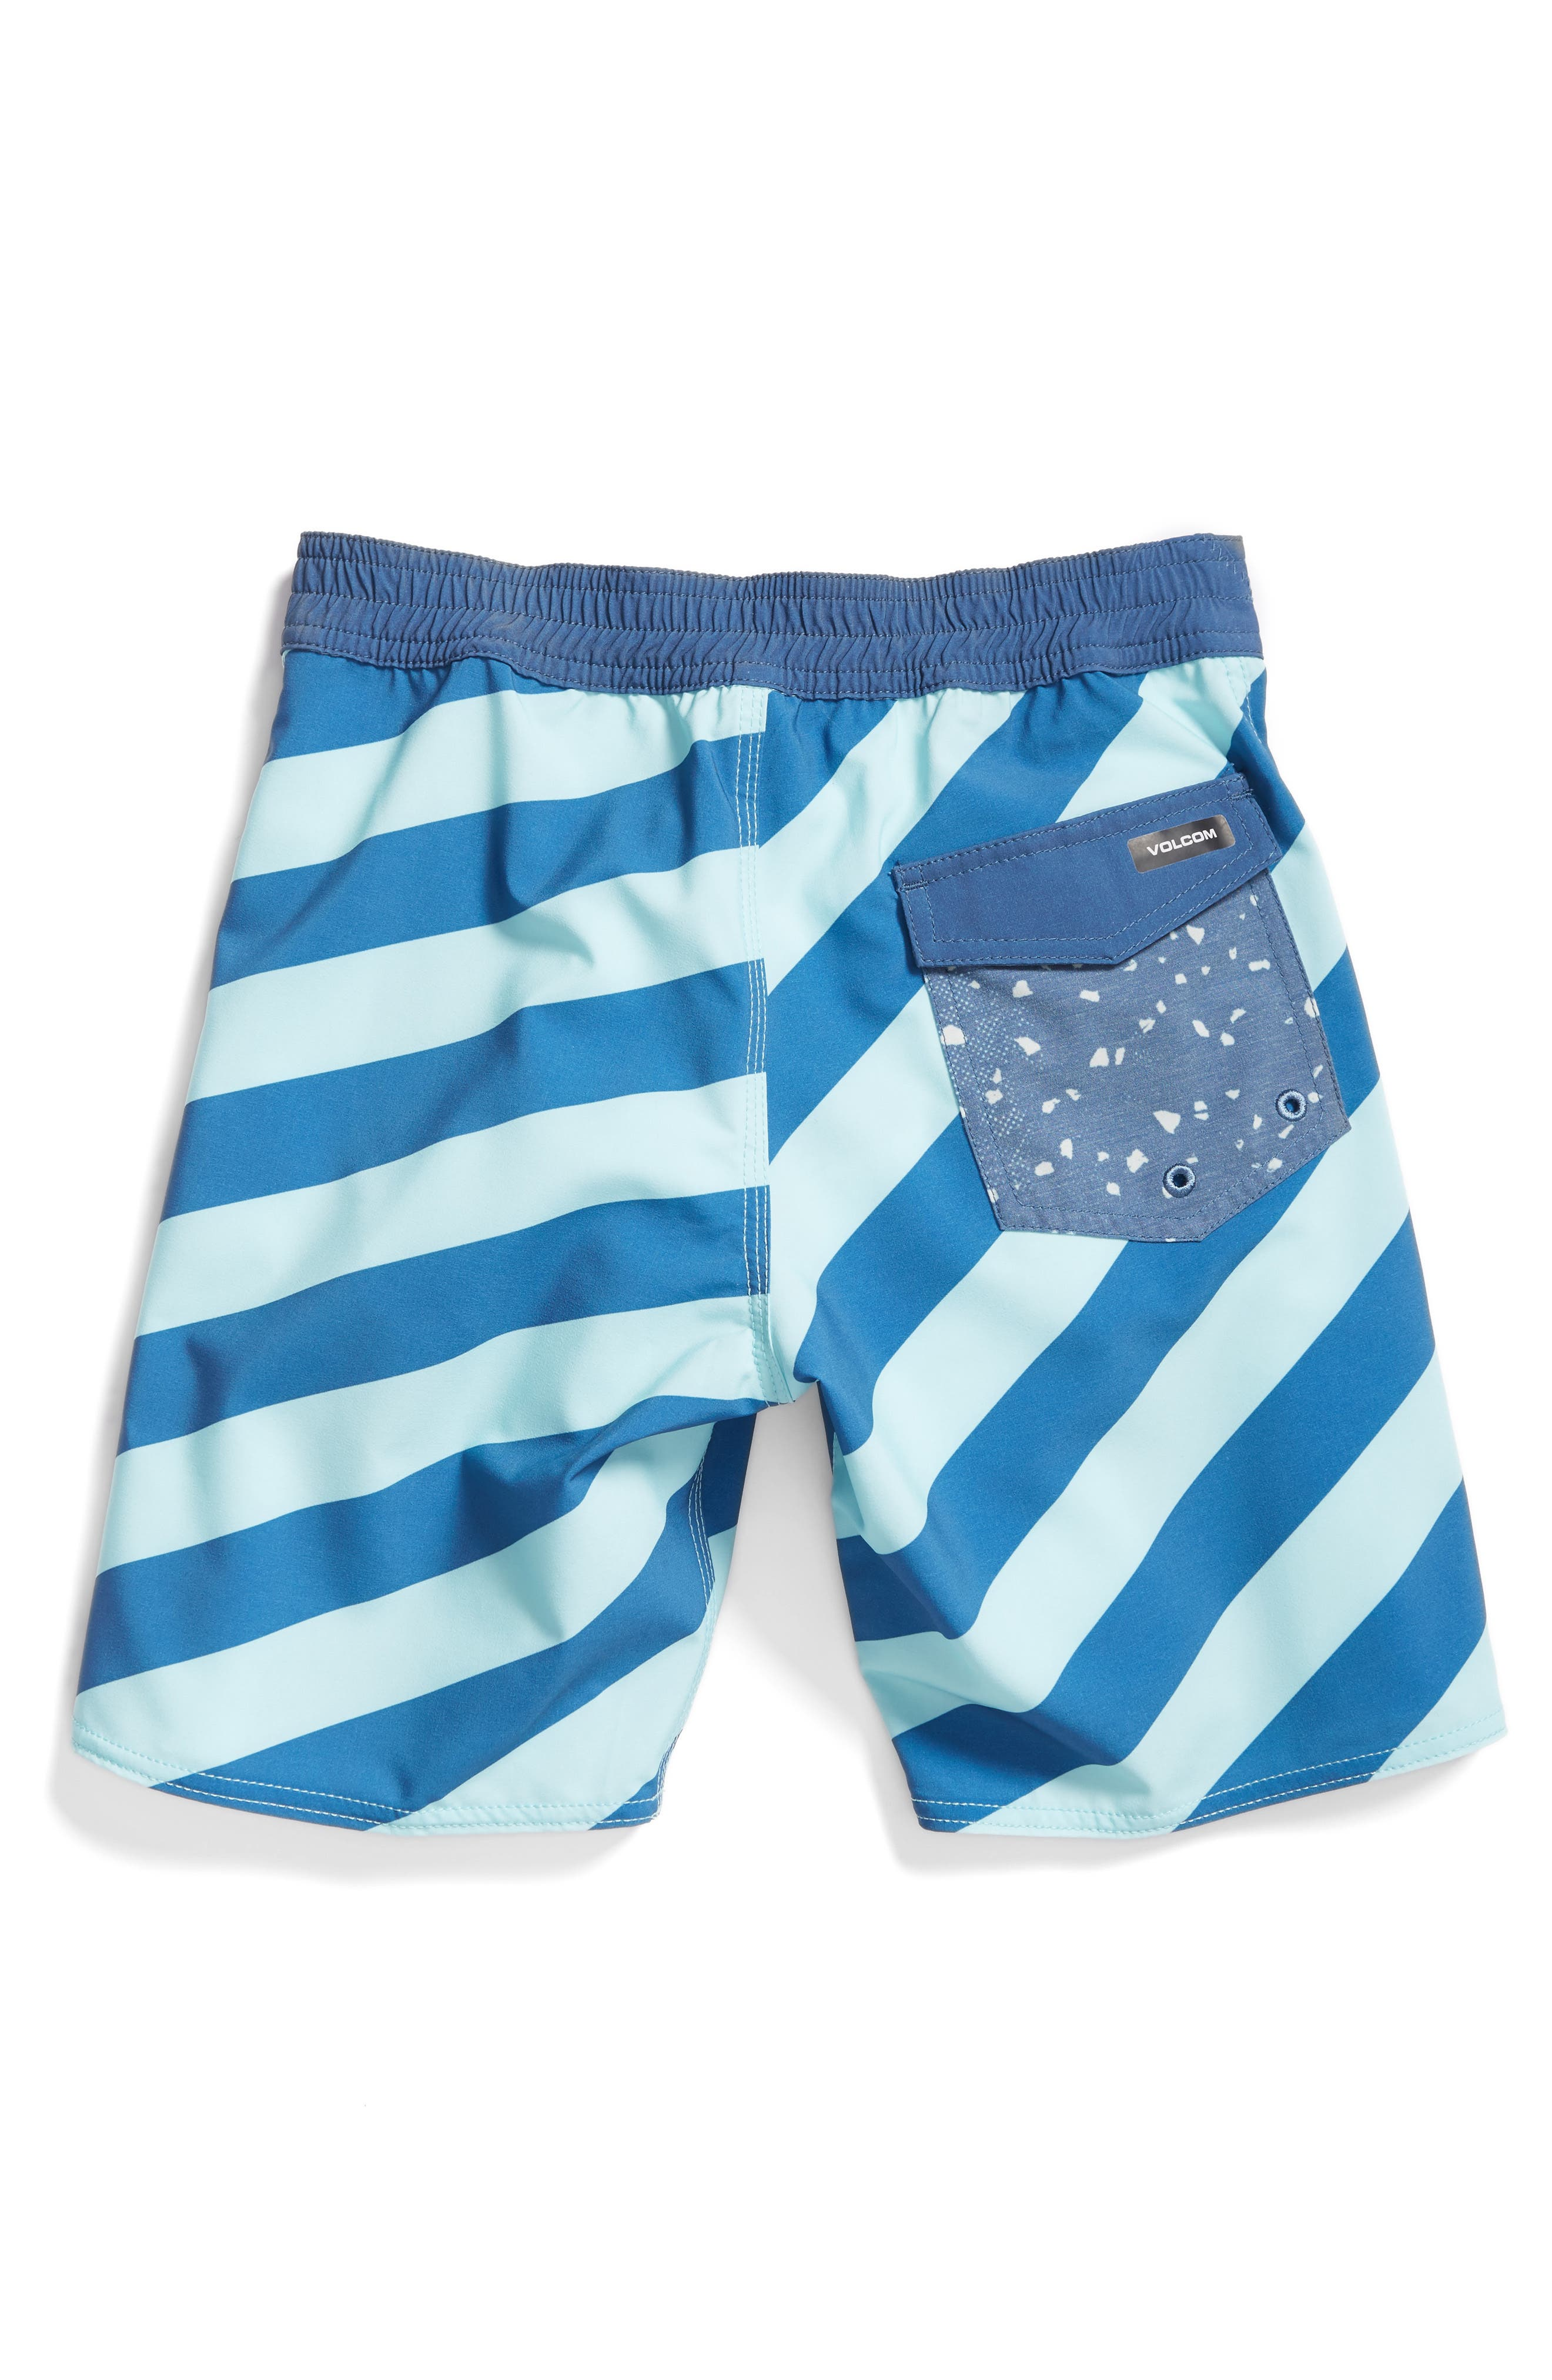 Stripey Jammer Board Shorts,                             Alternate thumbnail 2, color,                             Deep Water